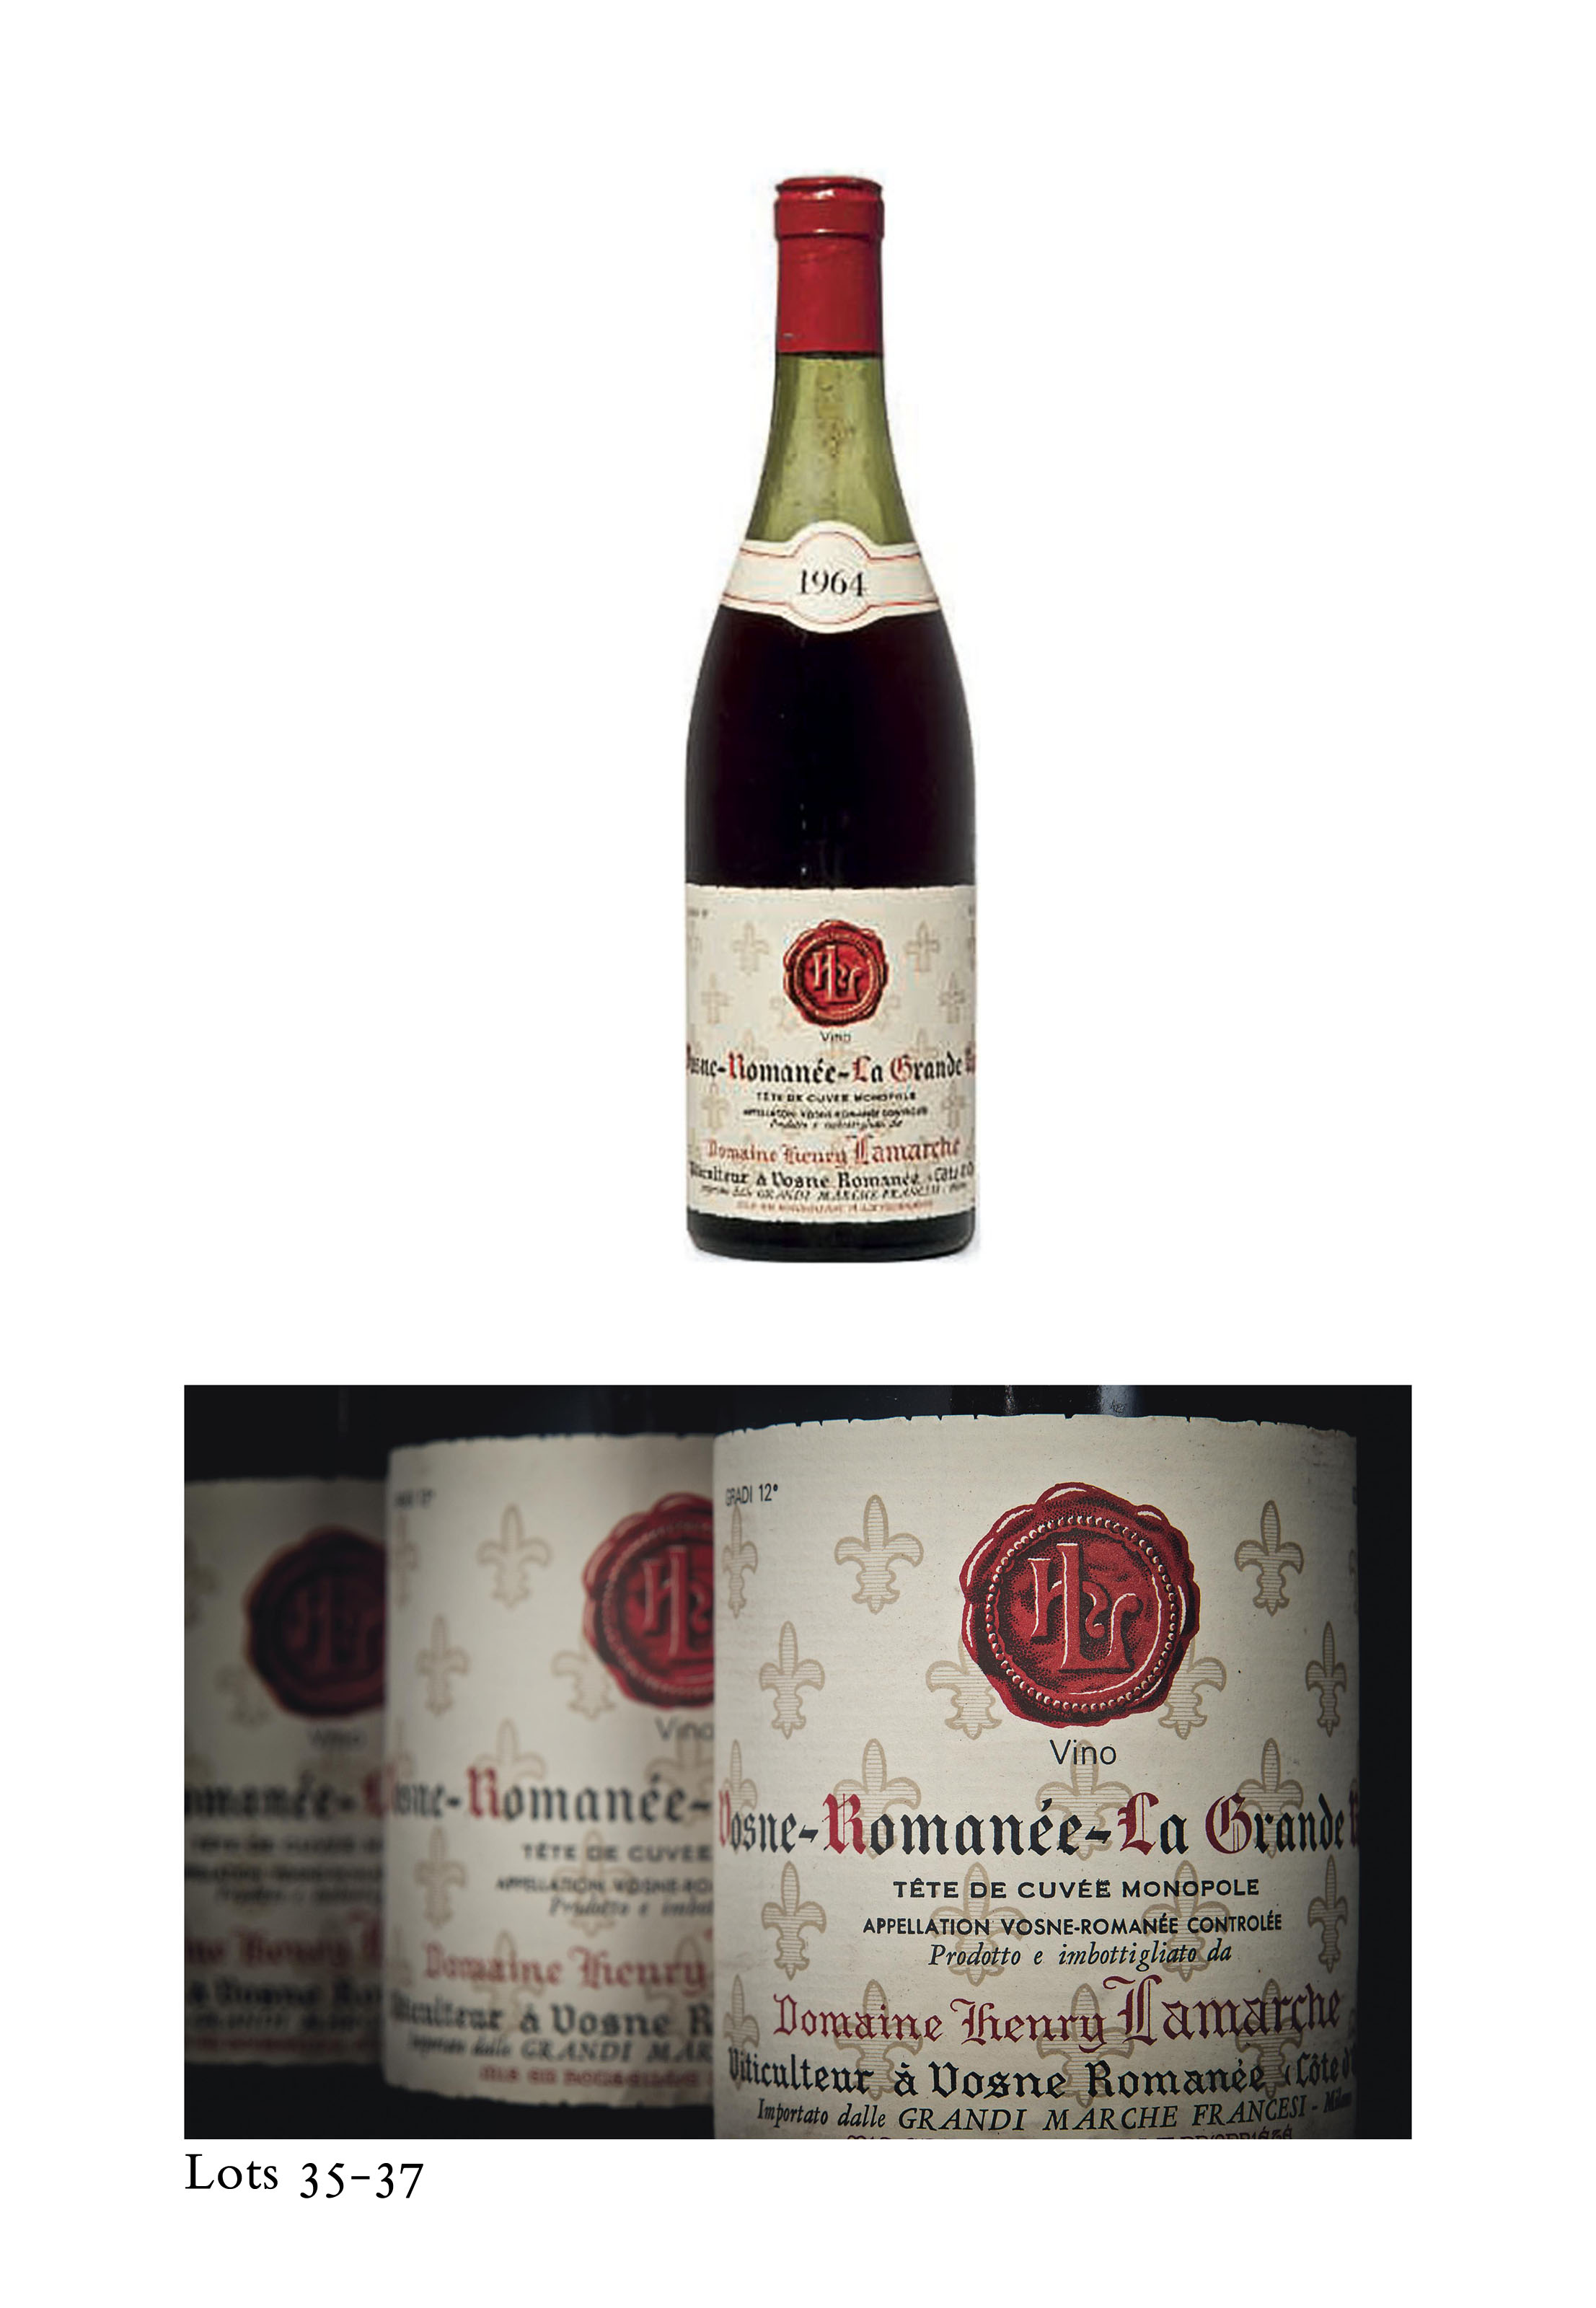 Henri Lamarche Grands-Echézeaux 1962 Corroded capsules with signs of seepage. Slightly bin-soiled labels. Levels: 9-10cms below base of corks  (3)  Armand Rousseau Gevrey-Chambertin Clos Saint-Jacques 1962 Corroded capsules. One stained label. Levels: 9.5cms below base of corks  (2) Henri Lamarche Vosne Romanée La Grande Rue  1964  One corroded capsule with signs of seepage. Good labels. Levels: three at 8cms, two at 9cms below base of corks  (5) Henri Lamarche Pommard-Epénots 1964  Corroded capsules with signs of seepage. Badly bin-soiled and stained labels. Levels: one at 7cms, one at 10cms below base of corks (2)